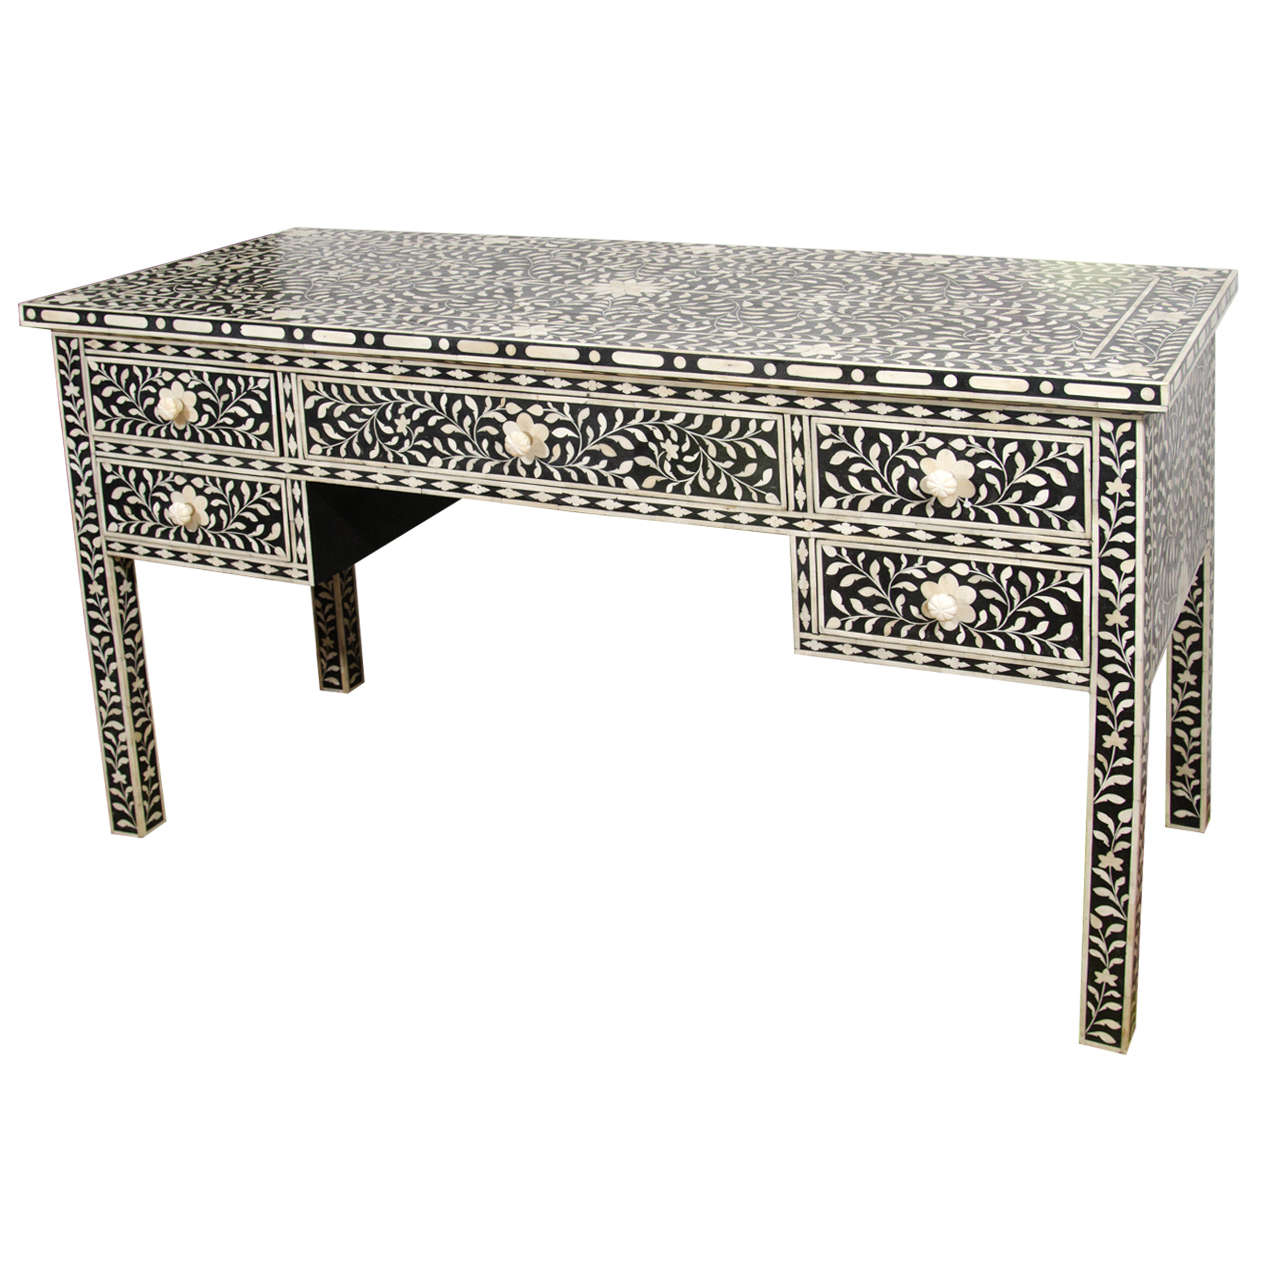 French Connection Gunmetal Coffee Table: Indian Black And White Bone Inlay Desk At 1stdibs